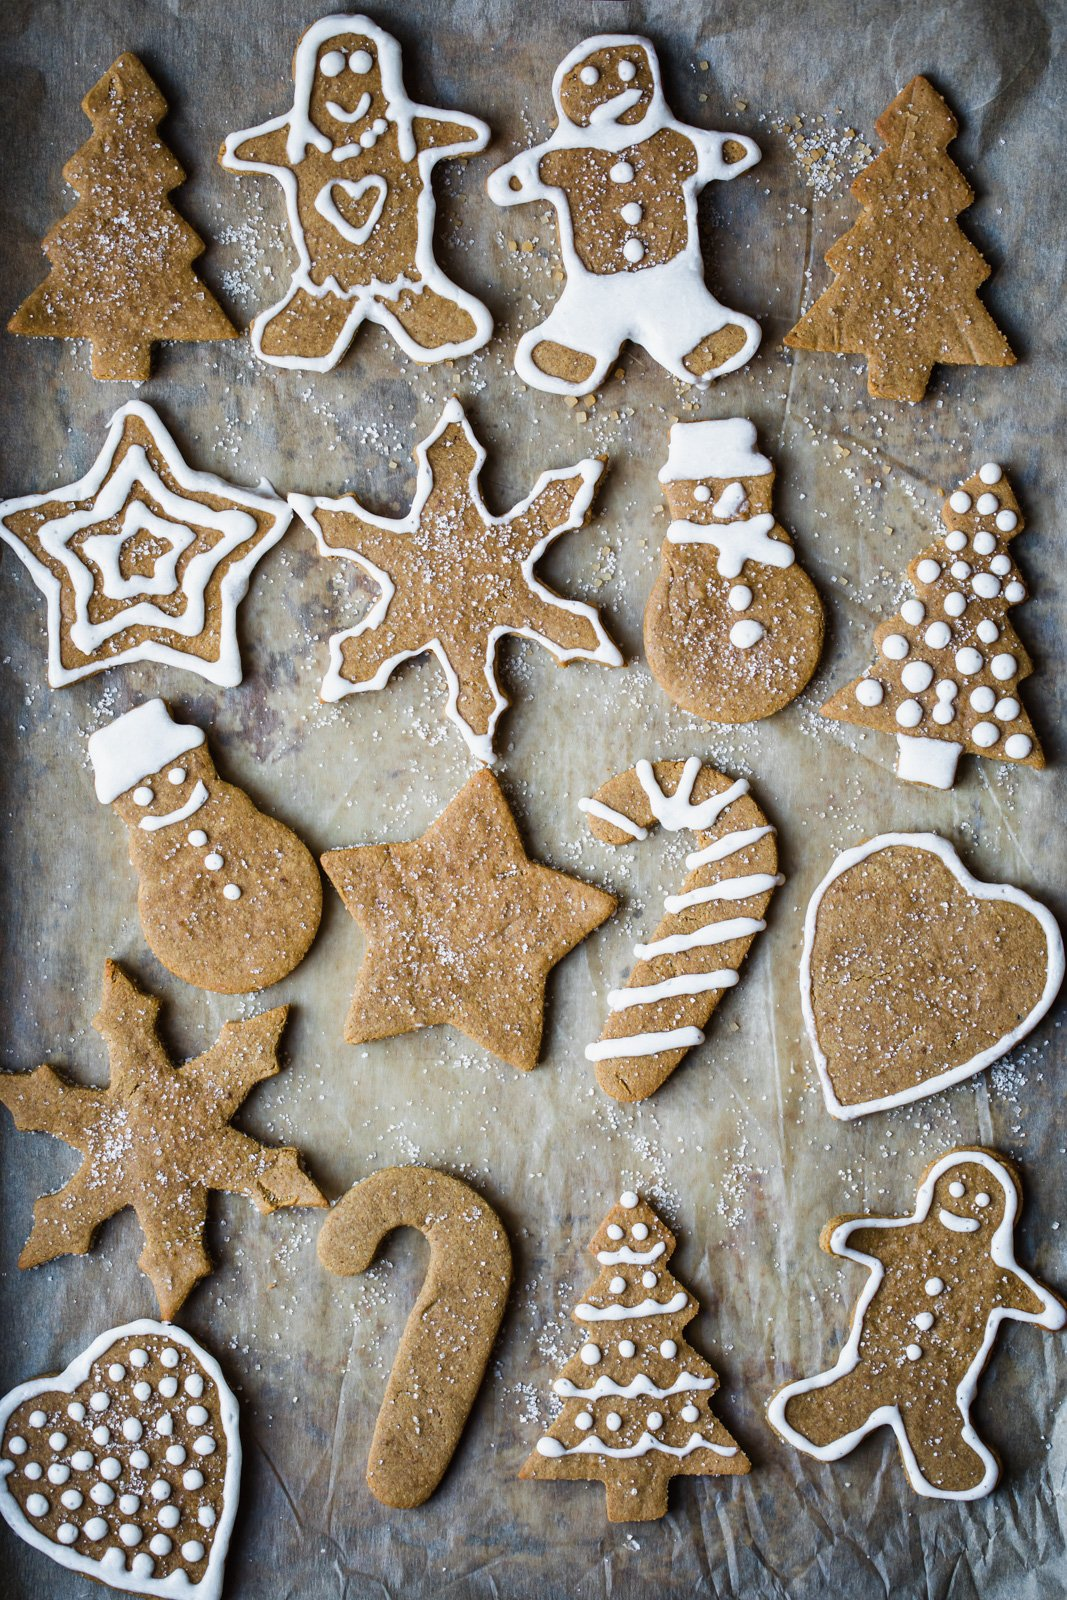 I rounded up 42 of our favorite cookies recipes that are a must-make! From chocolate chip to gingerbread - there's a cookie for everyone in here.